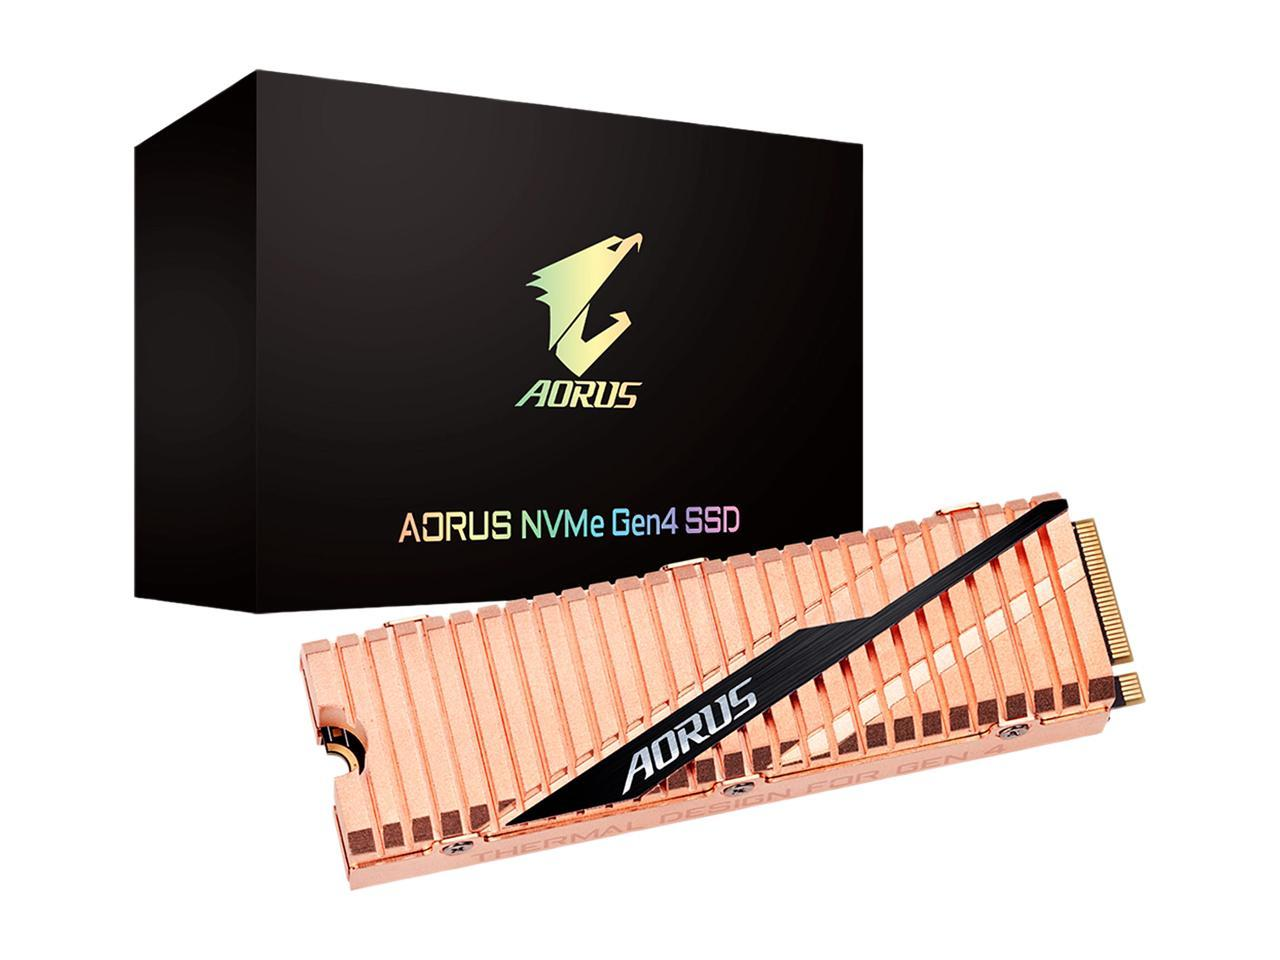 Aorus M.2 NVME Gen 4 SSD Drive Is Recognized In Bios But Not Recognized In Windows 10